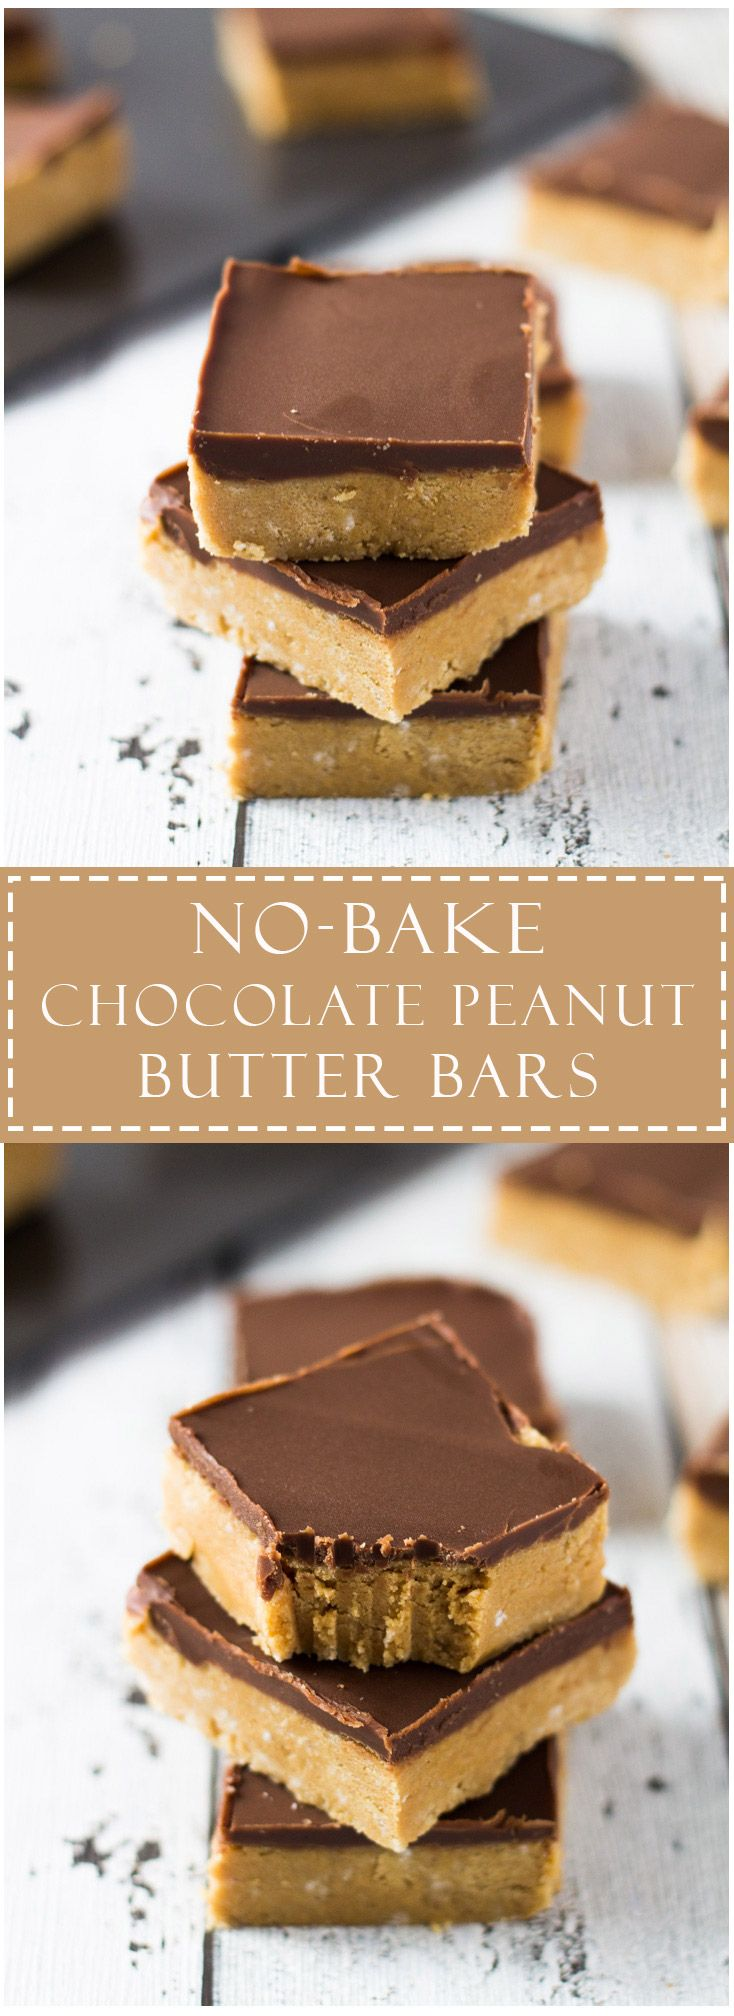 No-Bake Chocolate Peanut Butter Bars | Marsha's Baking Addiction